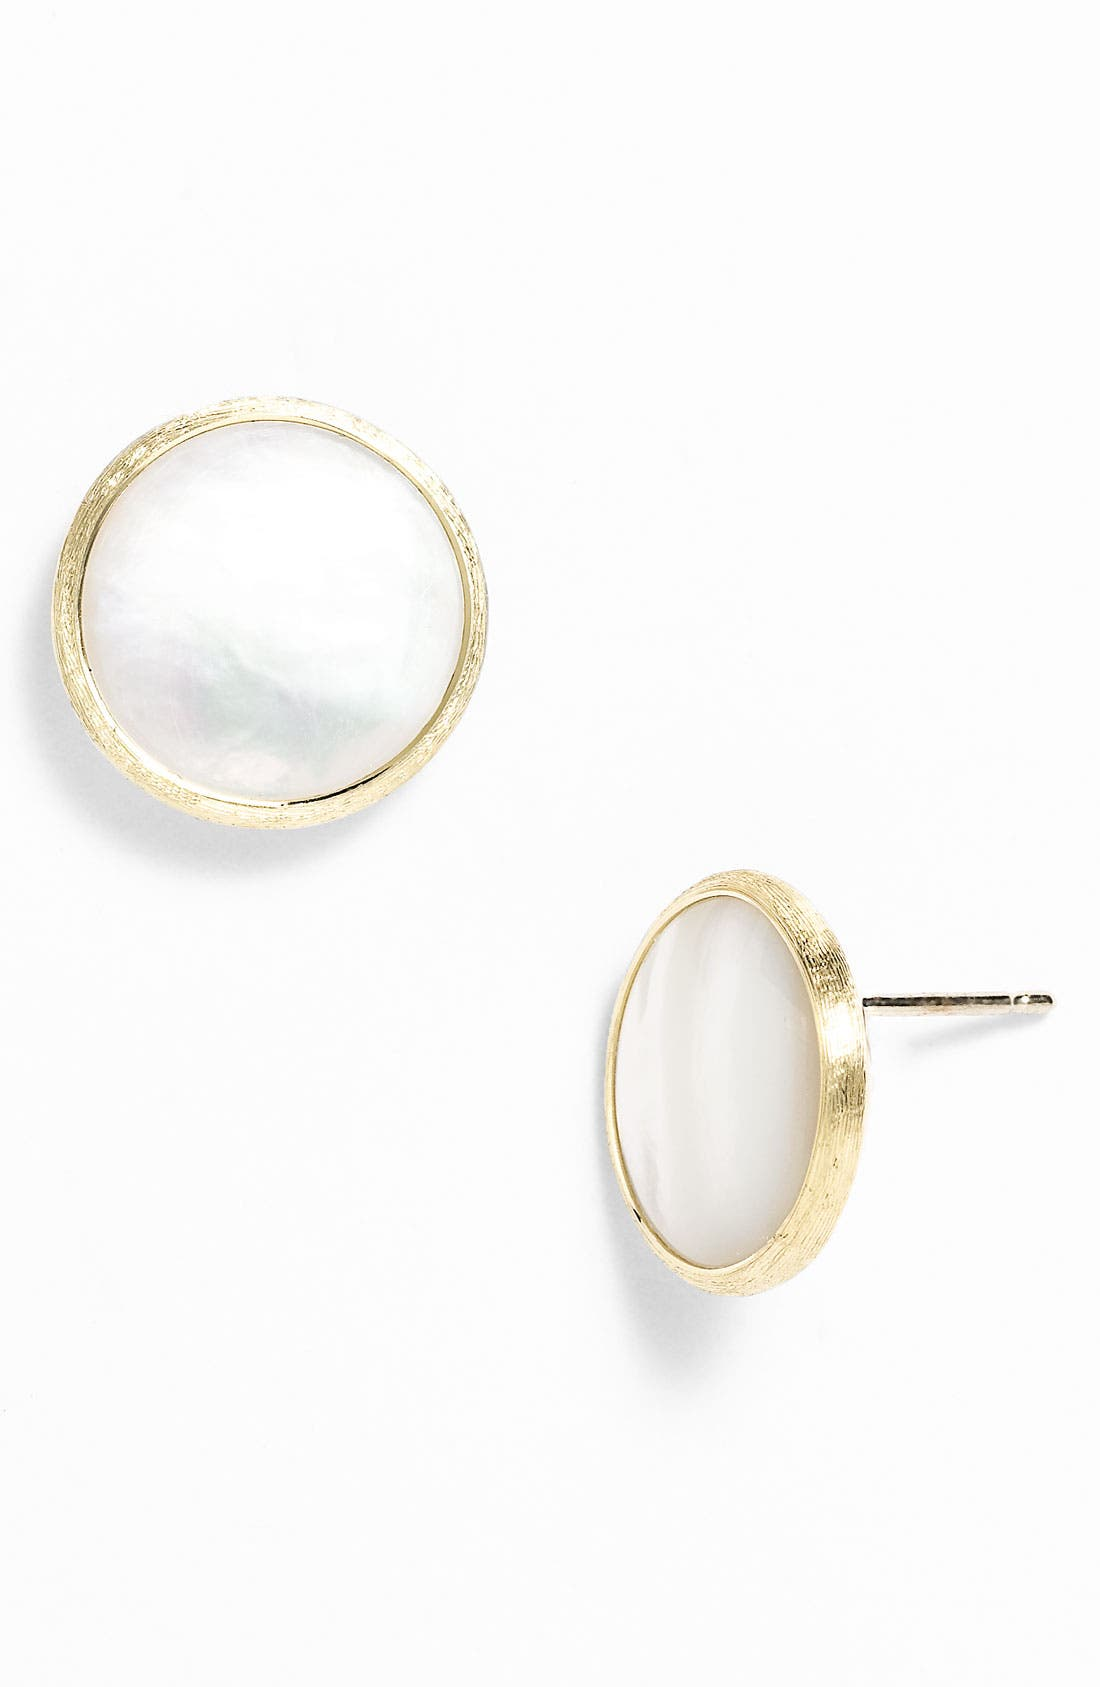 Alternate Image 1 Selected - Marco Bicego 'Jaipur' Large Stud Earrings